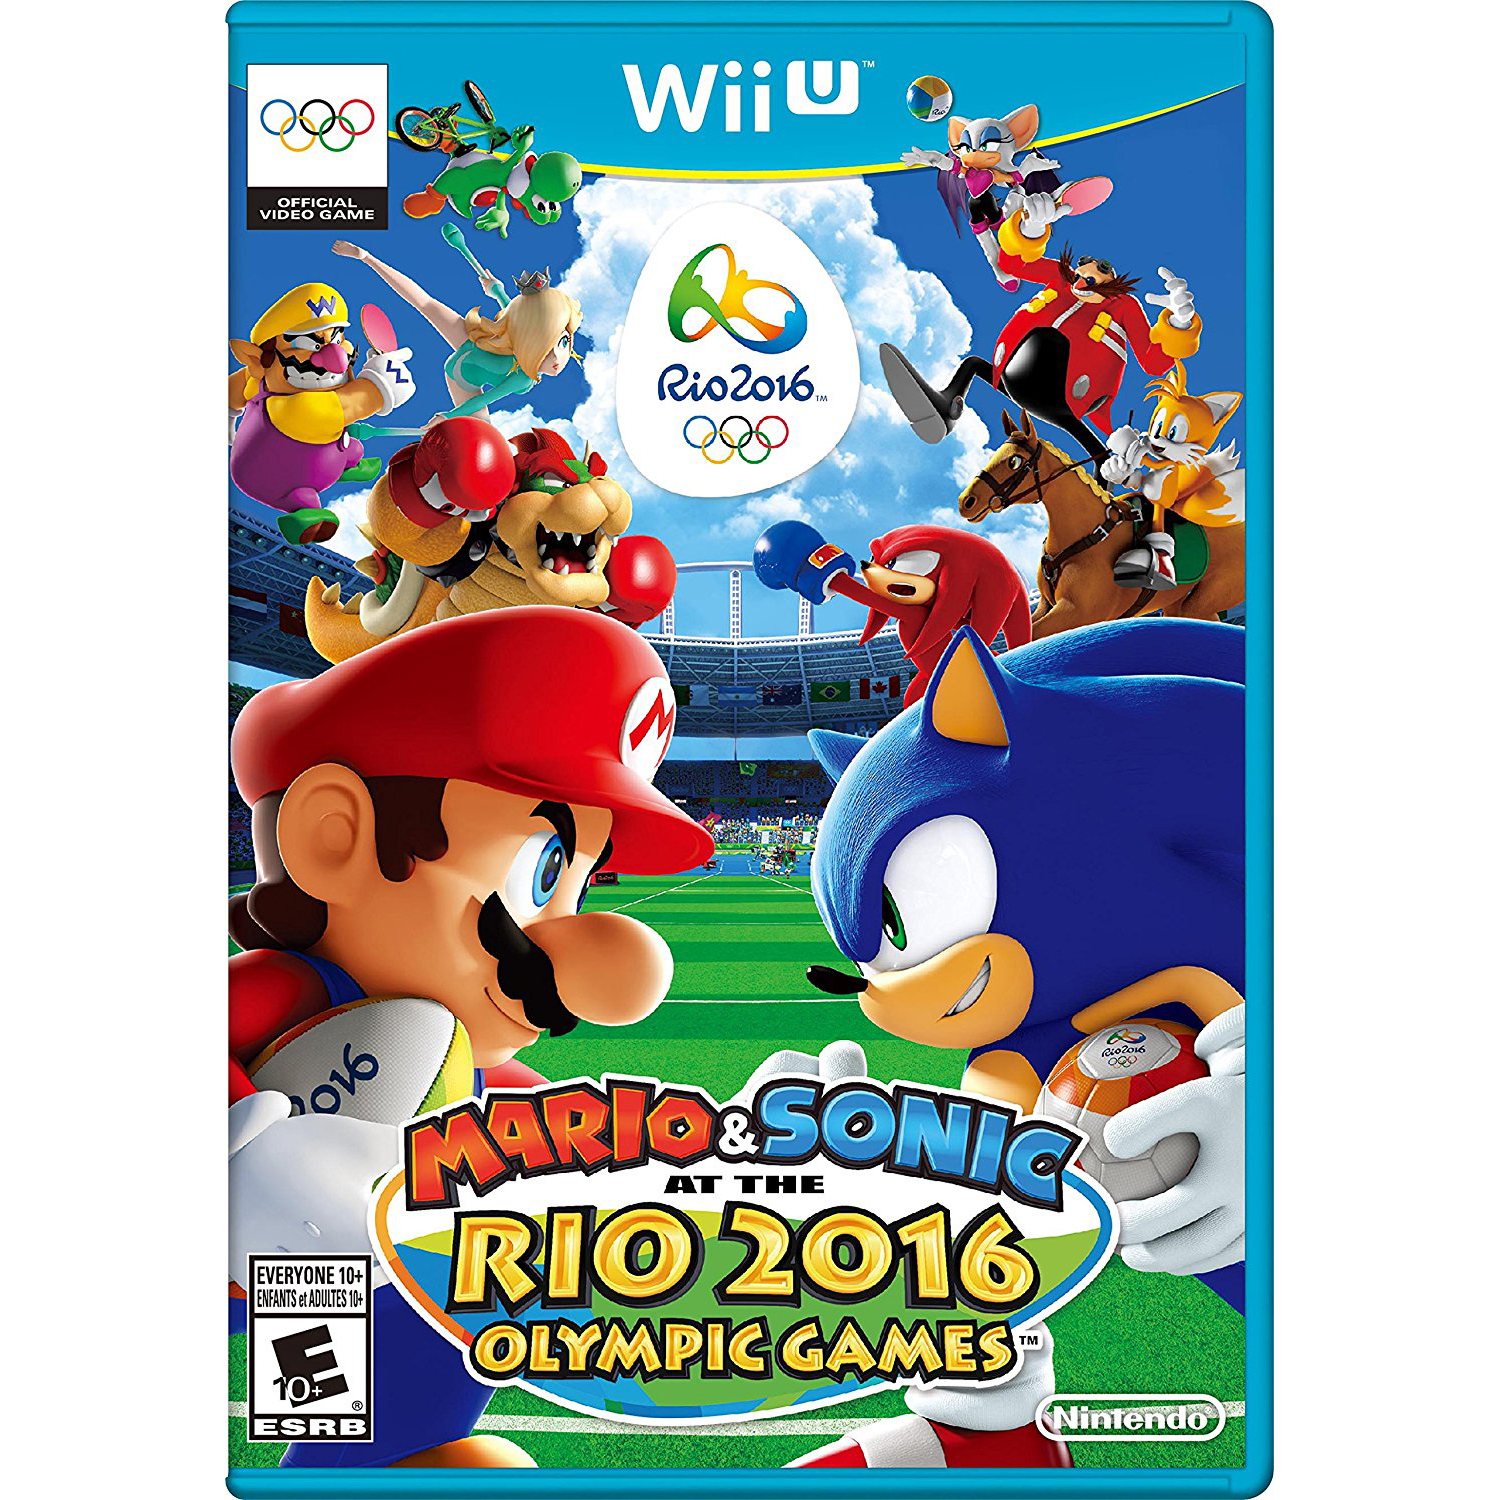 Mario & Sonic at the Rio 2016 Olympic Games (Email Delivery)